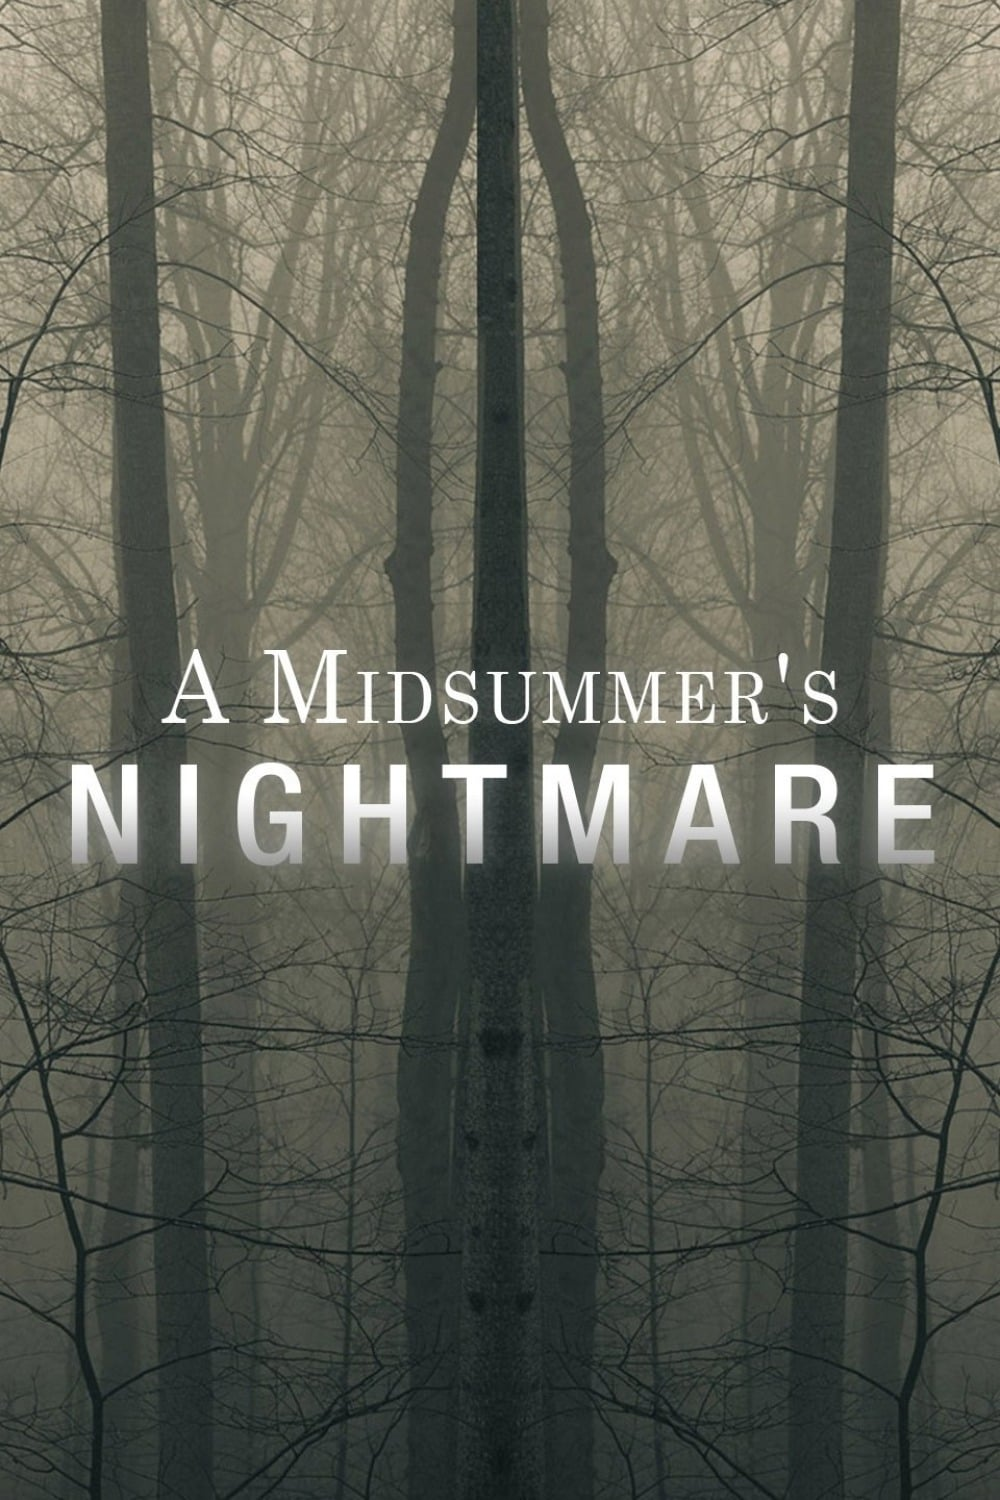 A Midsummer's Nightmare (2017)